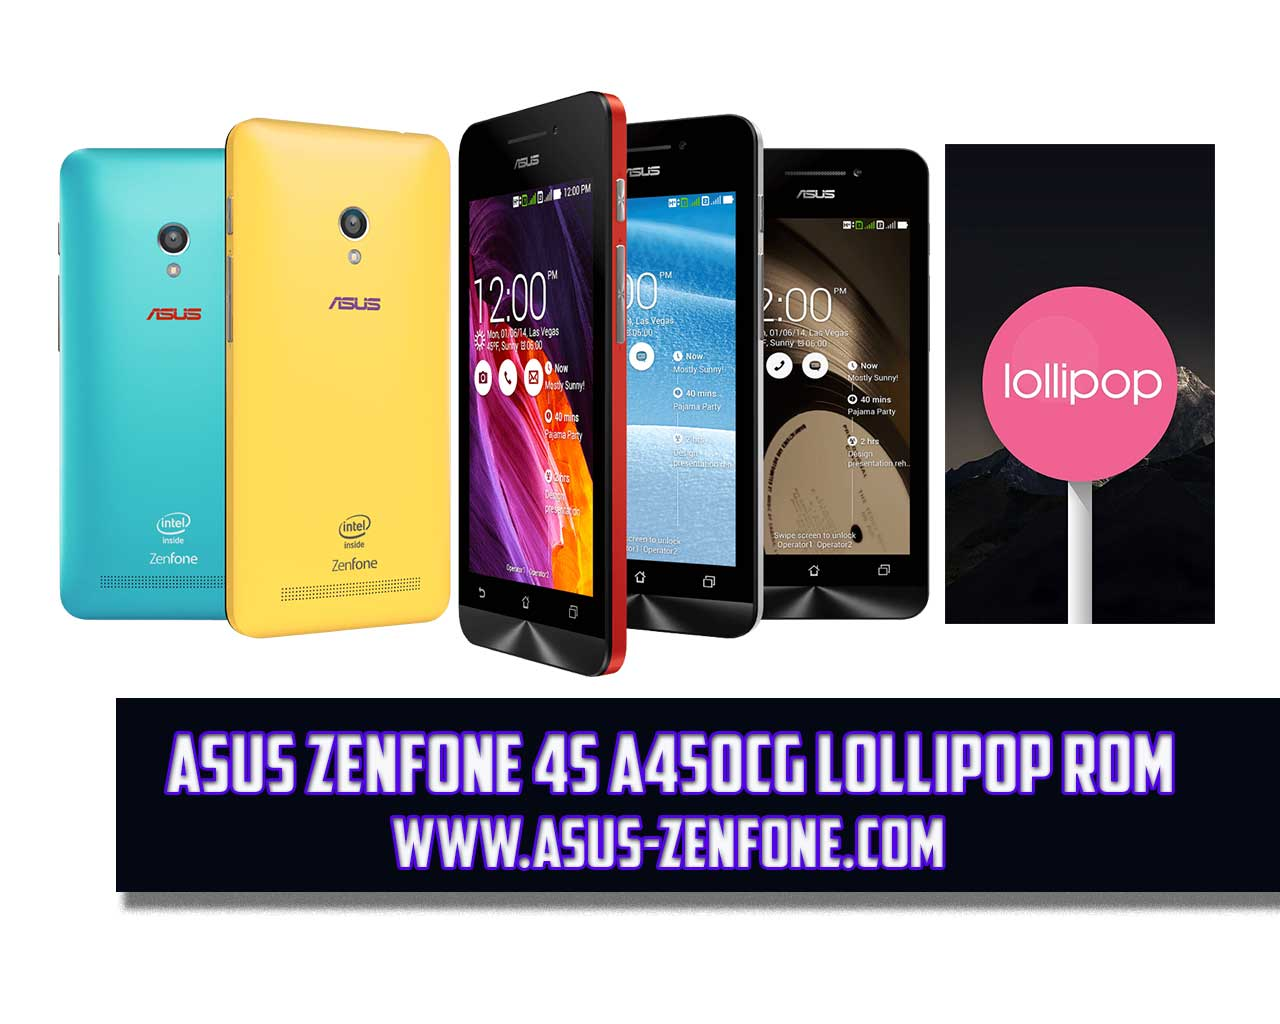 ROM] ASUS Zenfone 4S A450CG Android 5 0 Lollipop Download ~ Asus